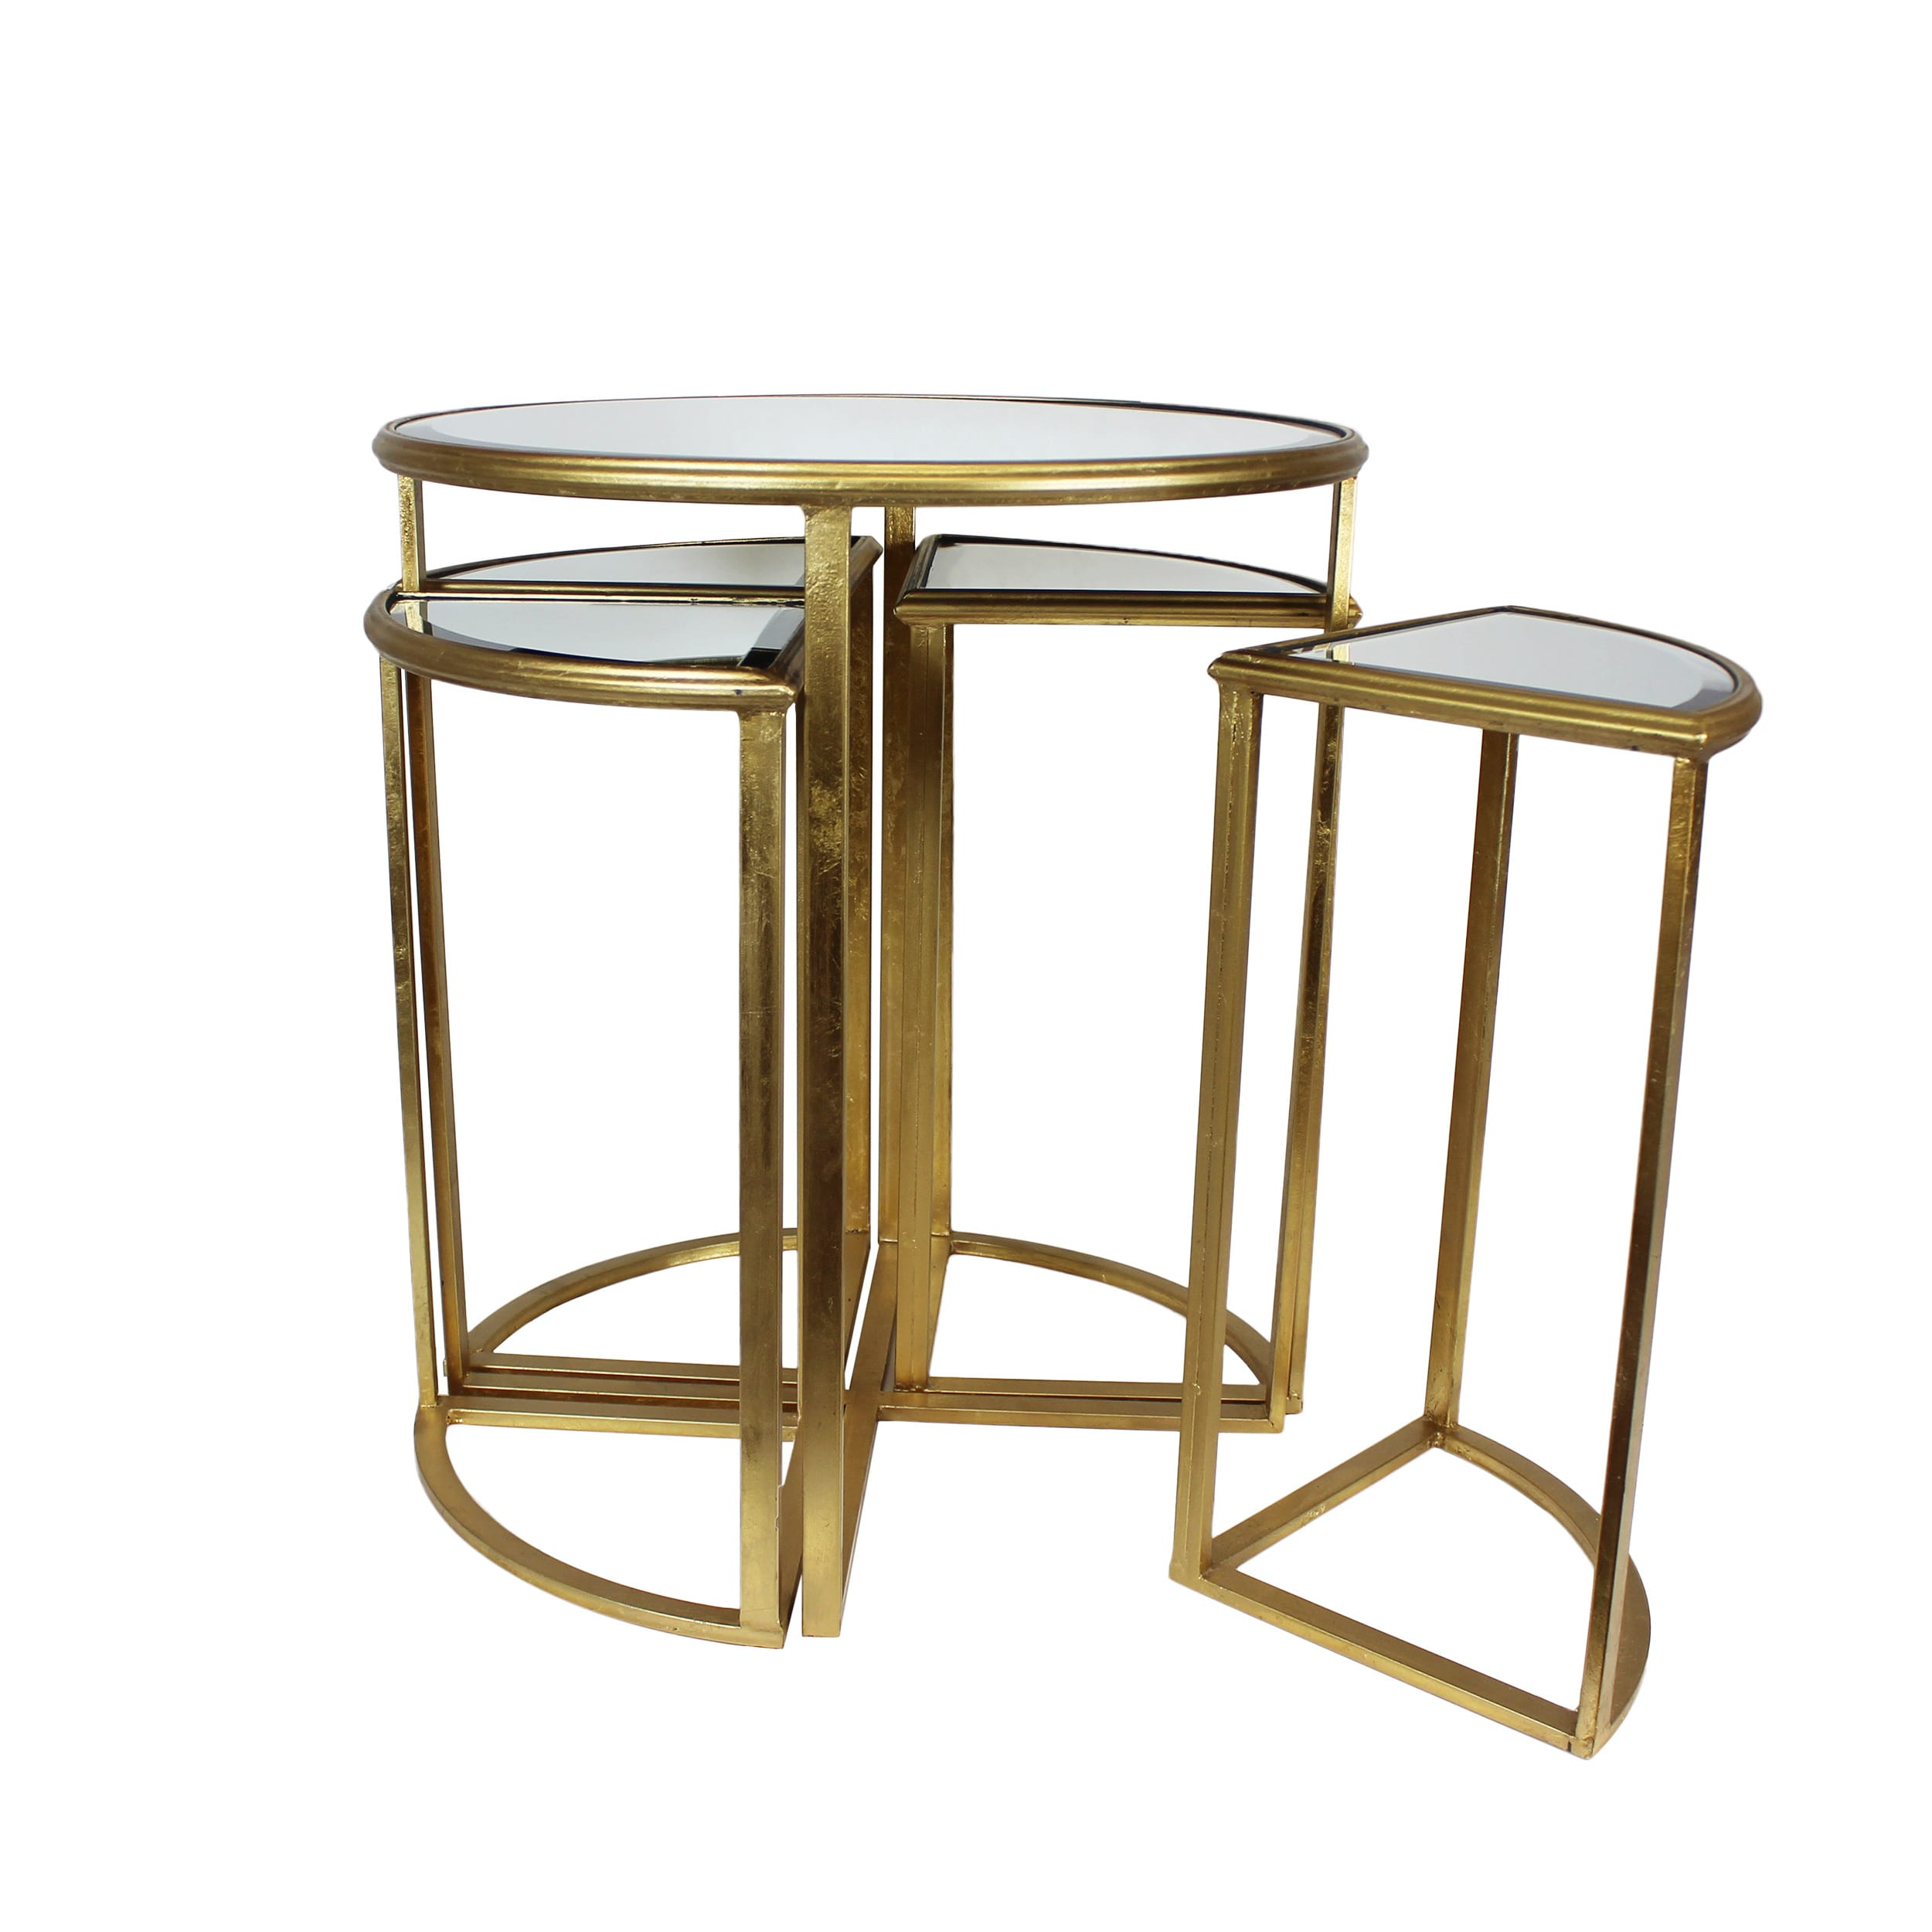 urban designs round gold mirror nesting accent table set tables with matching mirrors free shipping today home decorators catalog bronze and glass end coastal console front entry